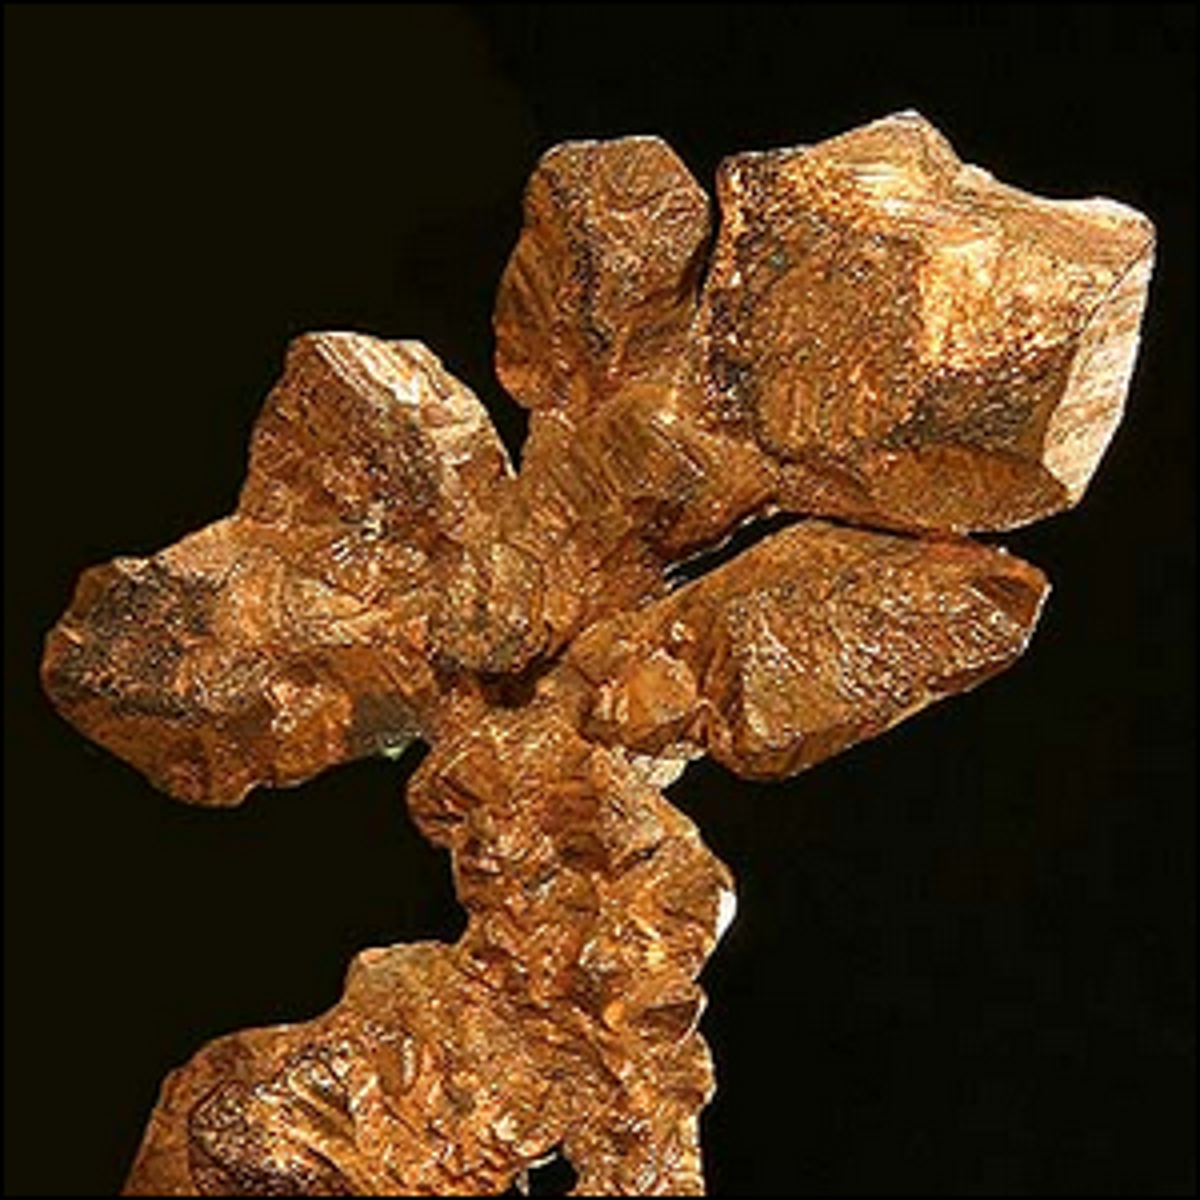 A sample of native copper from the Ray Mine, Arizona, United States.